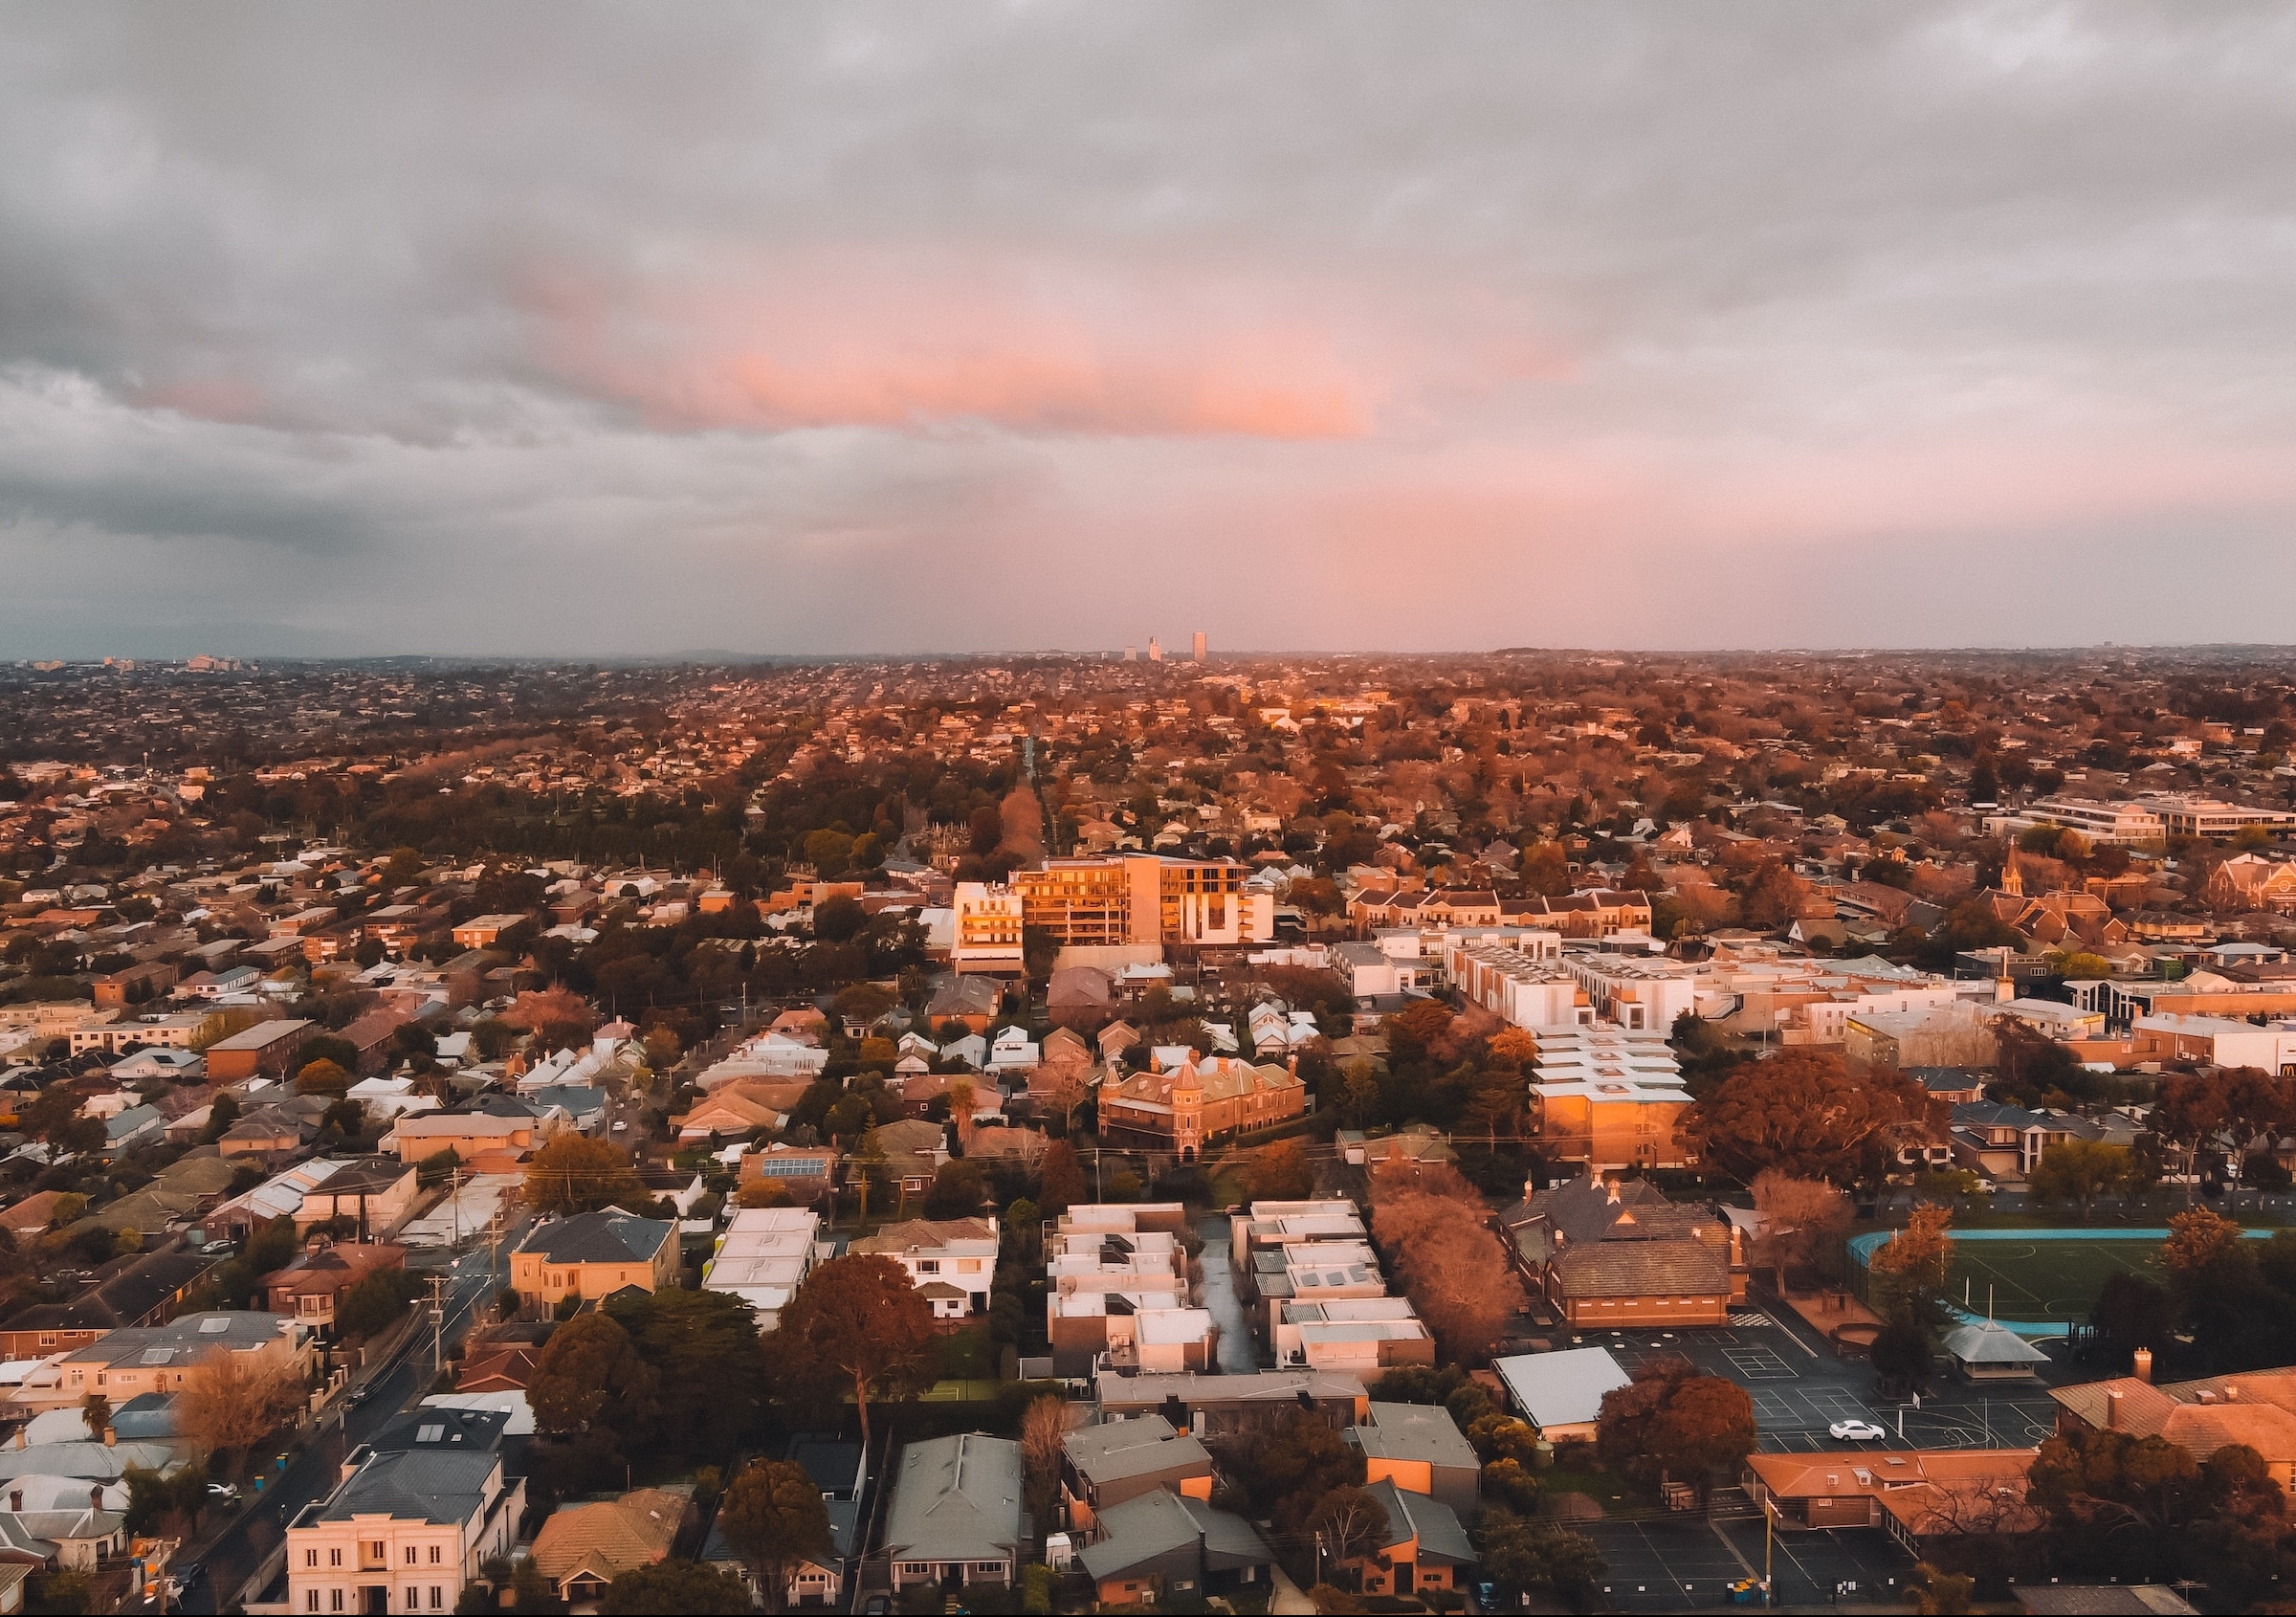 A new report from UNSW City Futures Research Centre recommends far-reaching changes to stabilise Australia's housing market. Photo: Unsplash.